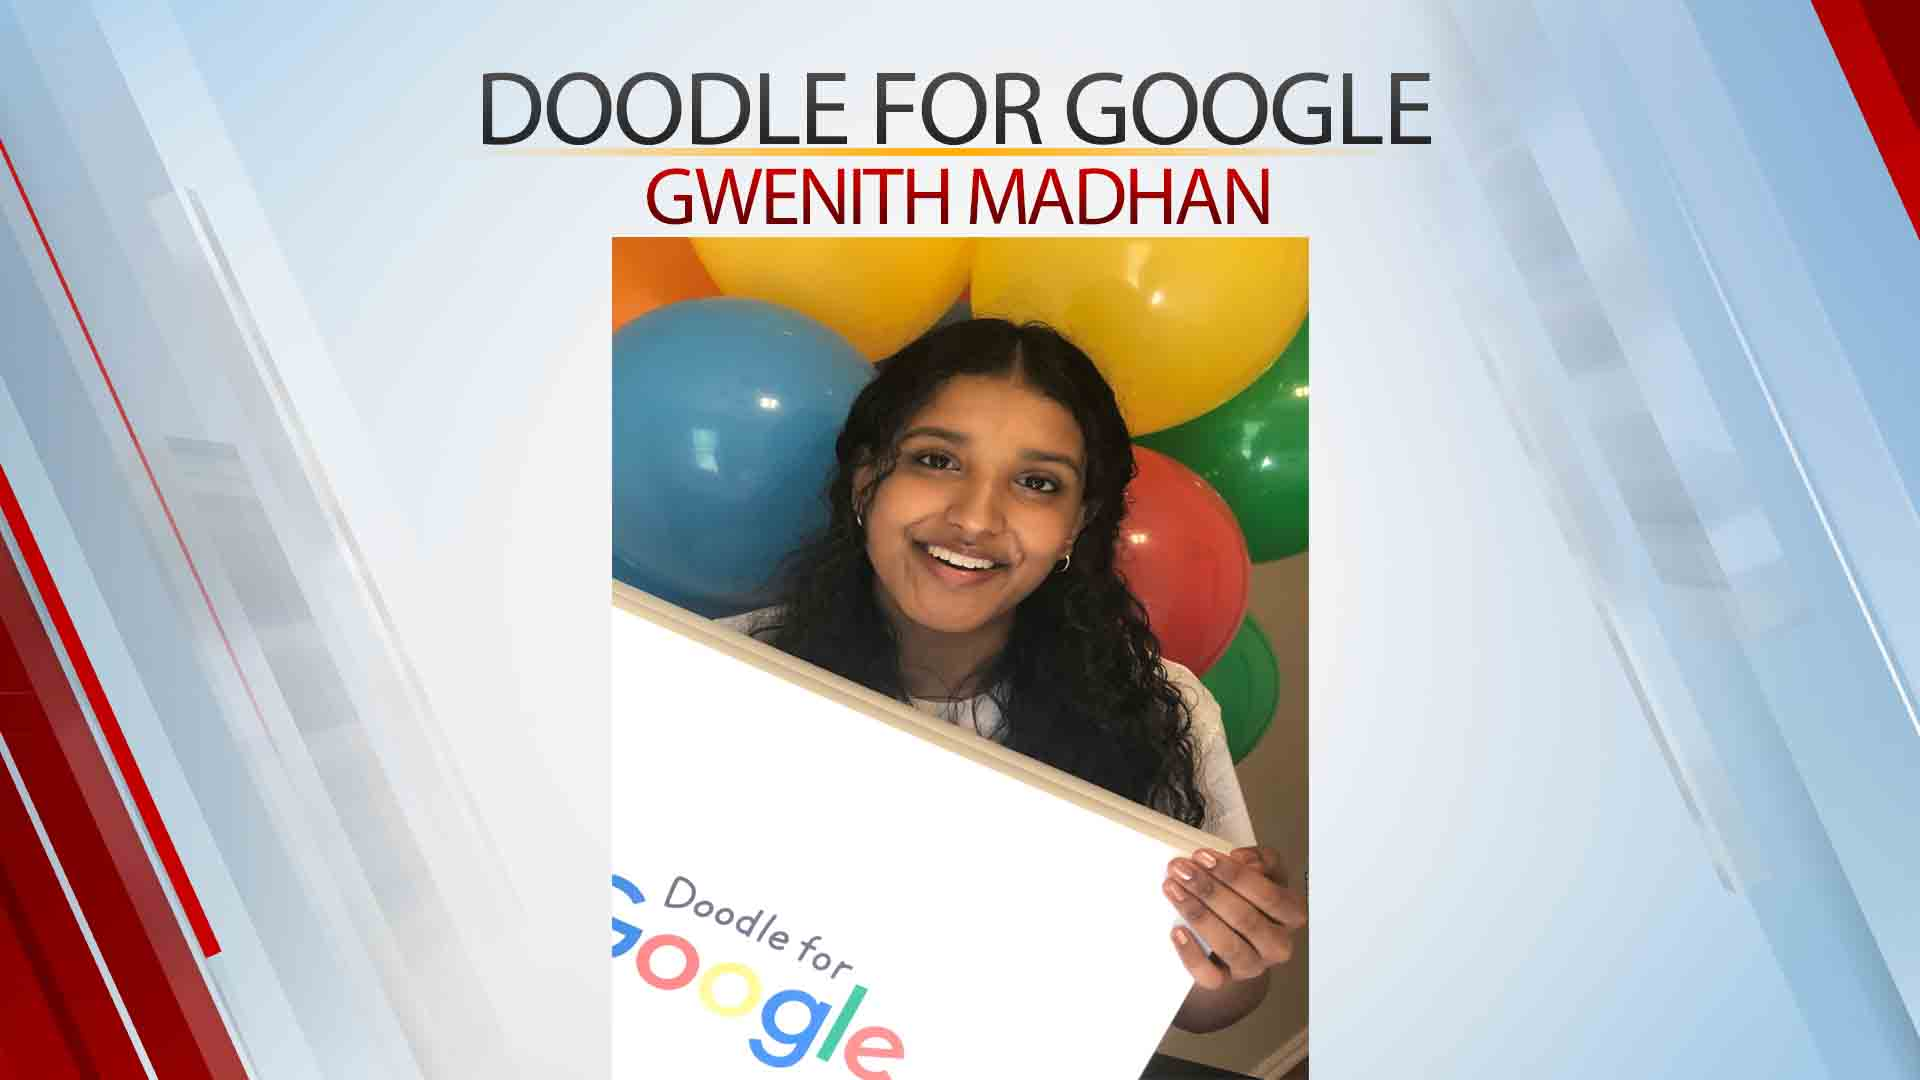 Jenks High School Student National Finalist For 'Doodle For Google' Competition